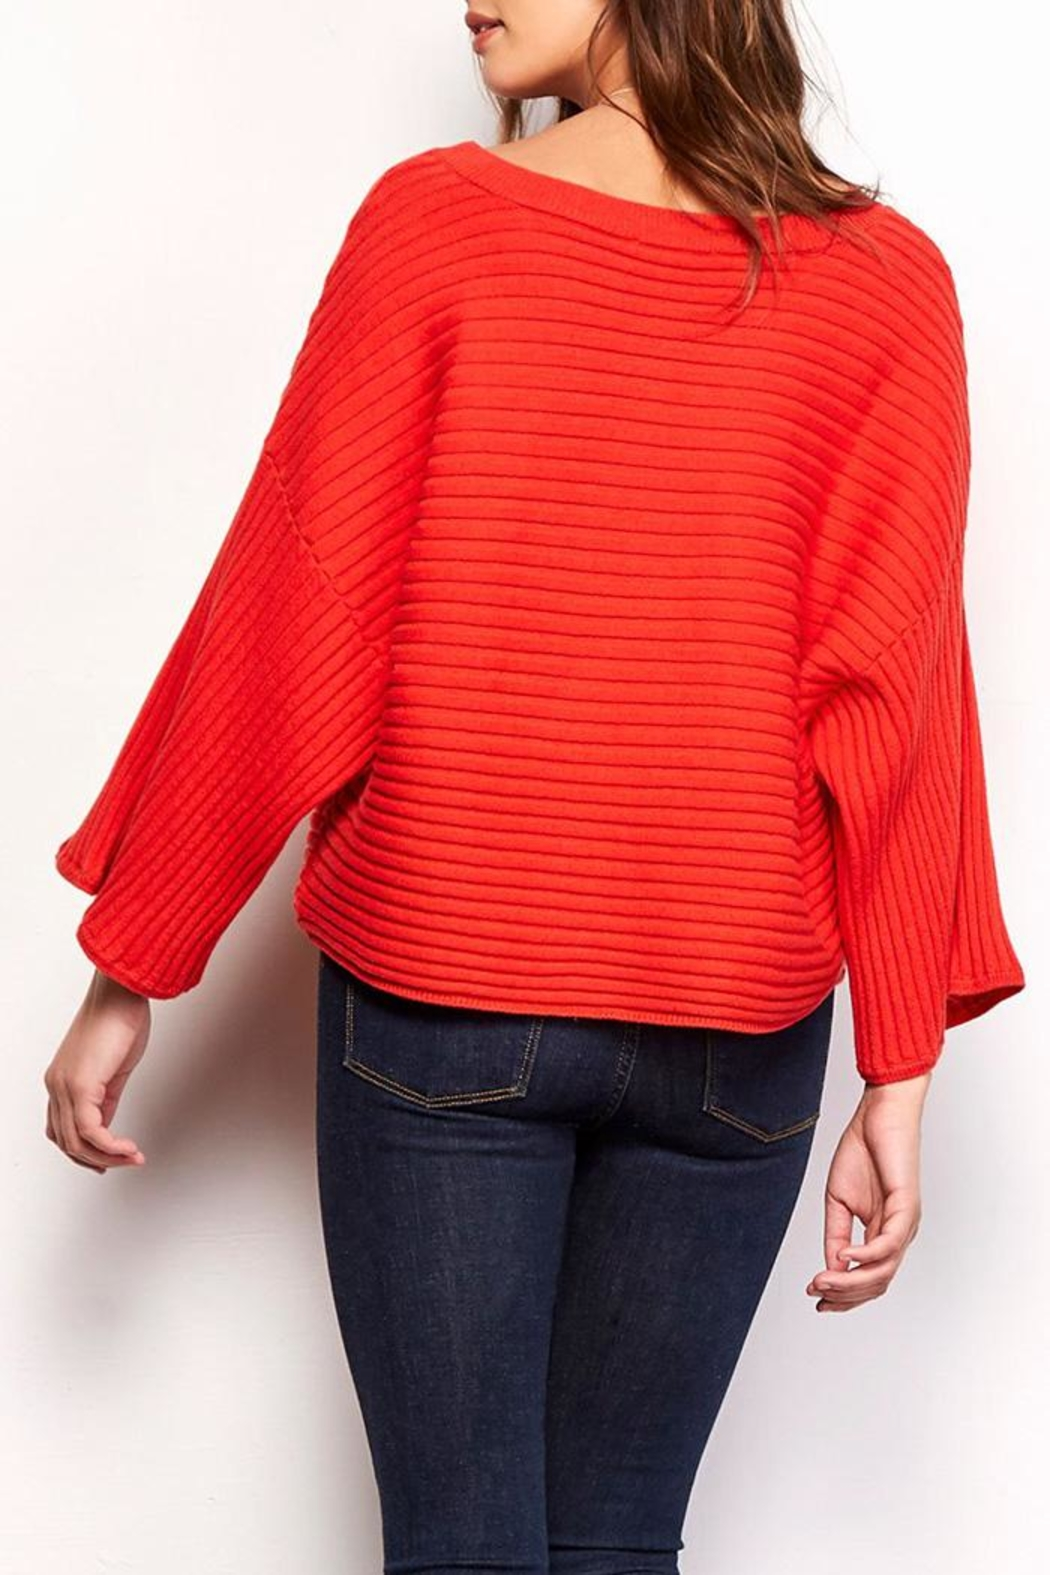 Jack by BB Dakota Claudel Red Sweater - Side Cropped Image